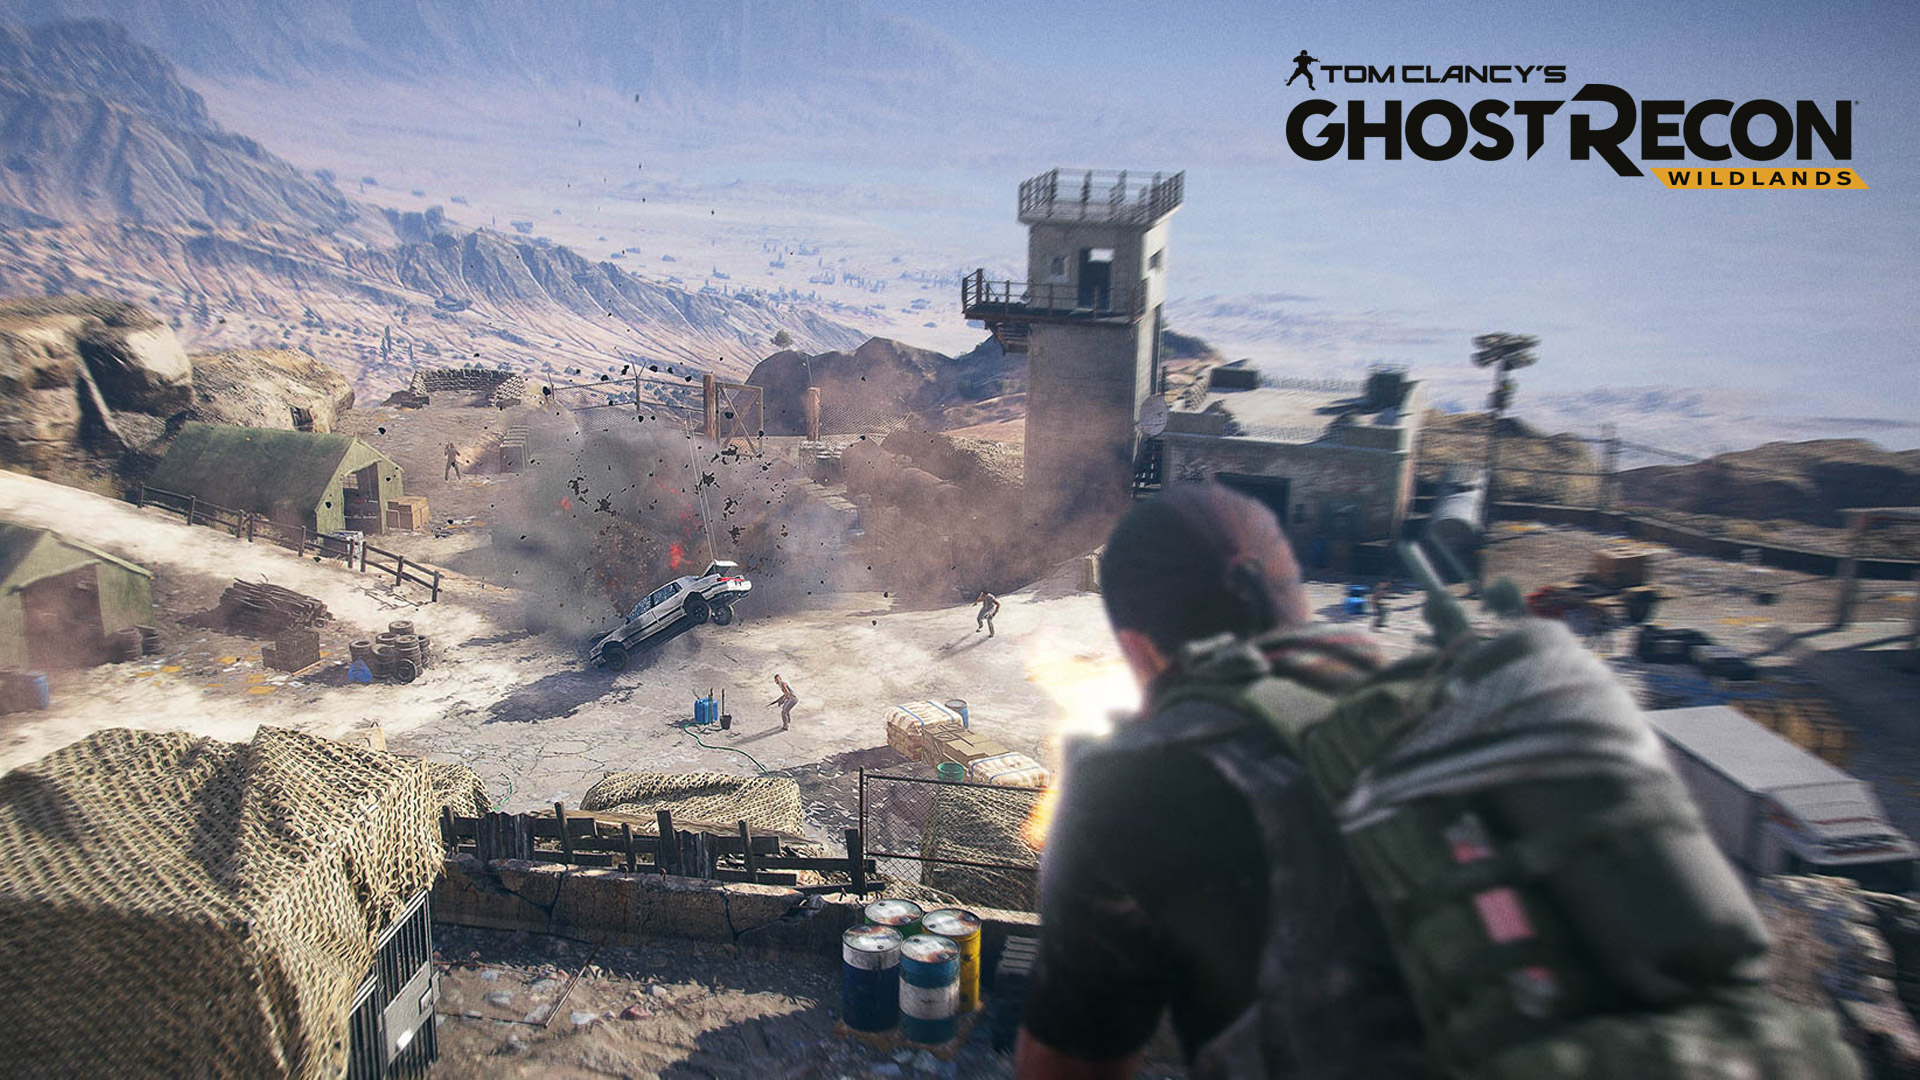 Free Ghost Recon: Wildlands Wallpaper in 1920x1080